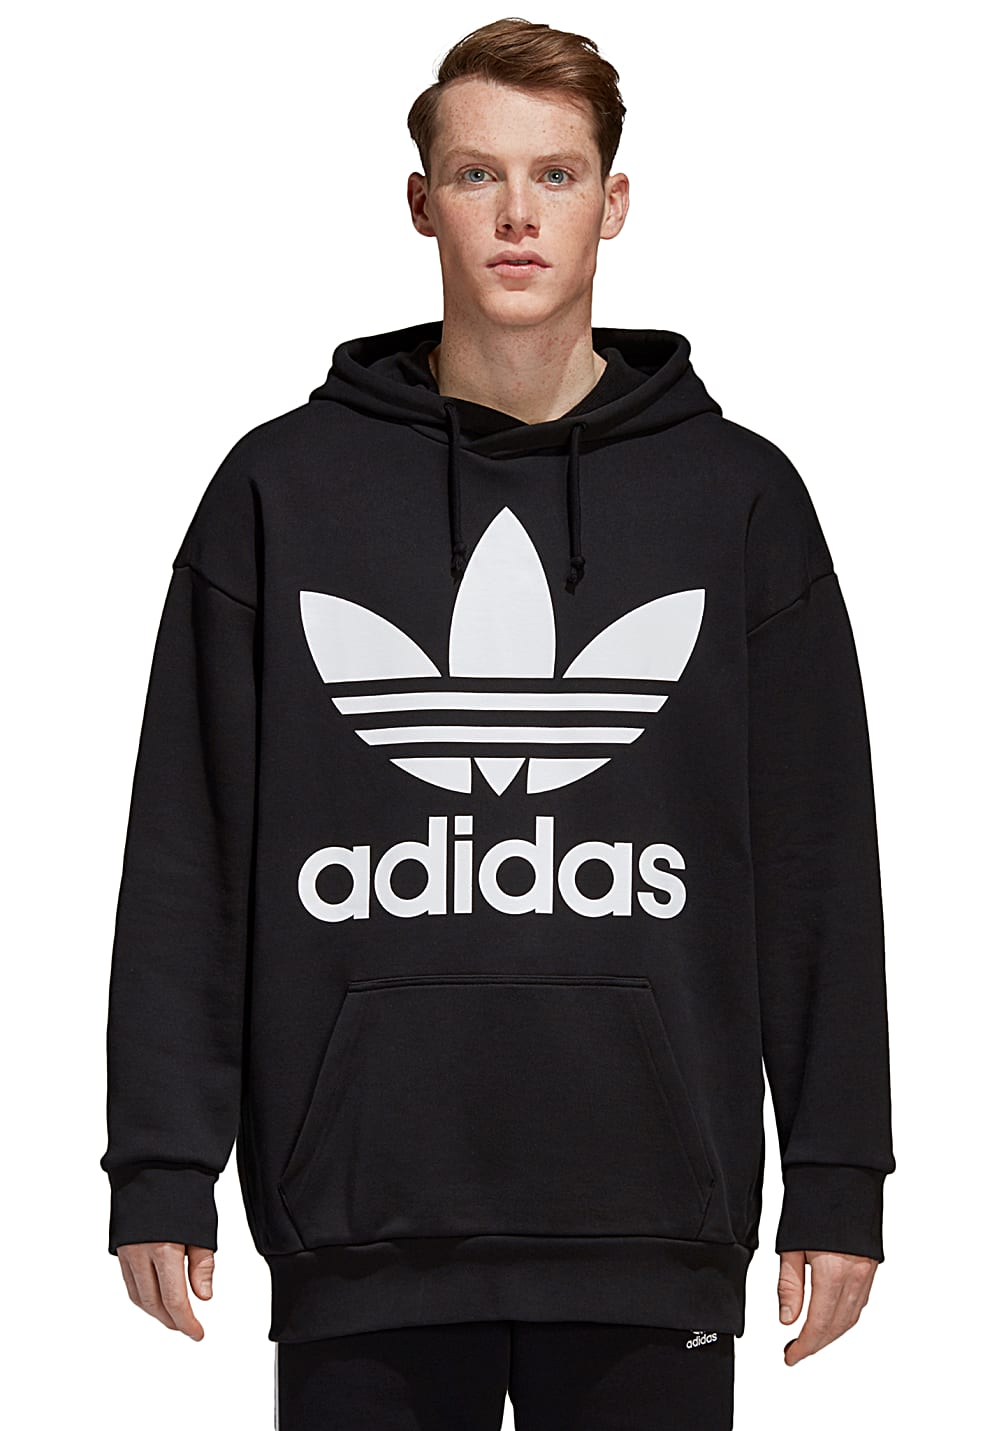 ADIDAS ORIGINALS Trefoil Over Hood Sweat à capuche pour Homme Noir